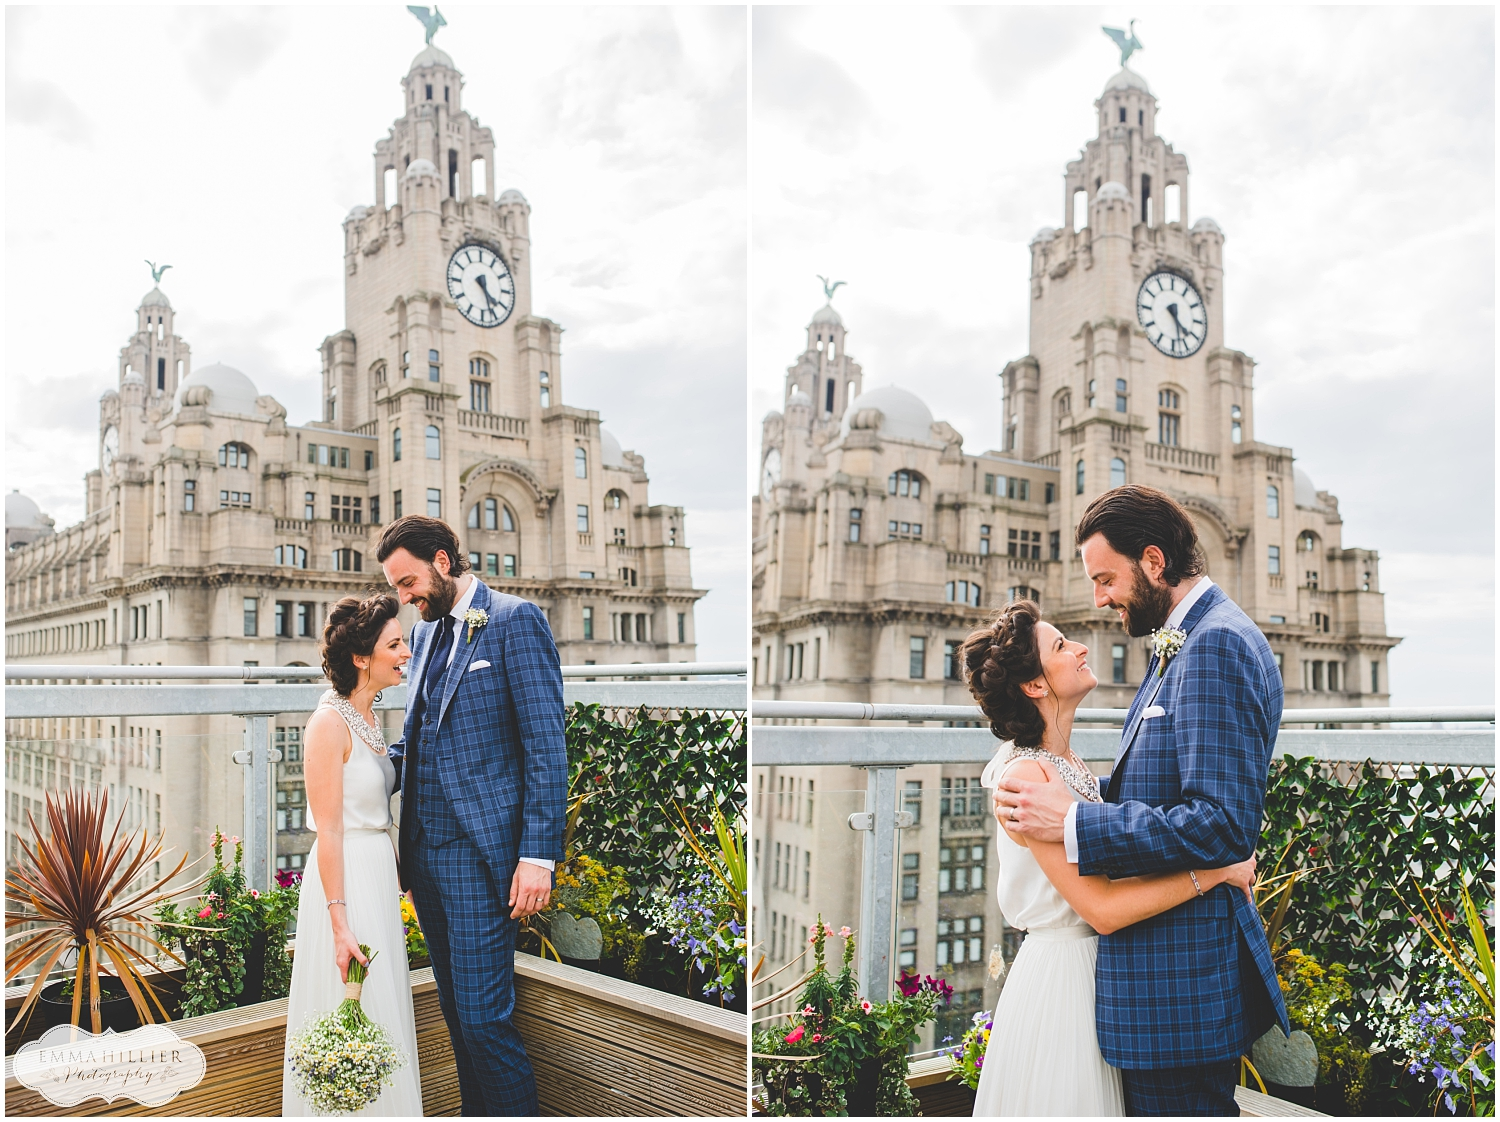 Liverpool Town Hall and Leaf wedding